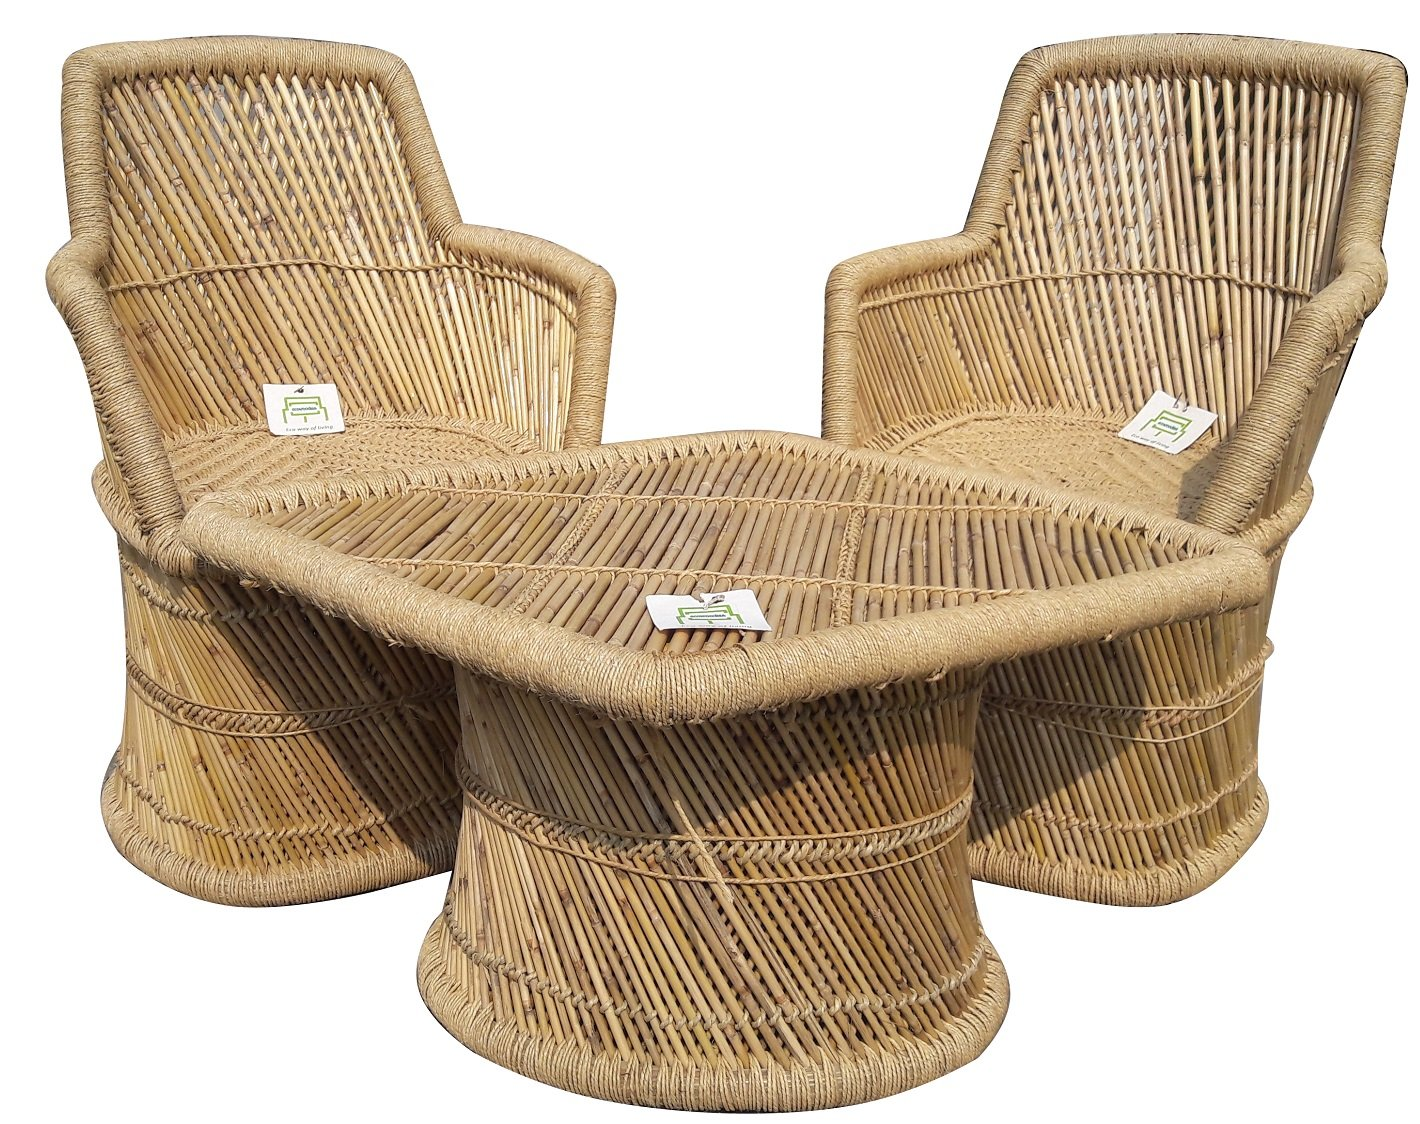 Ecowoodies ajuga outdoor furniture for terrace lawn eco friendly sitting bamboo chair furniture set for lawn outdoor garden terrance living room2